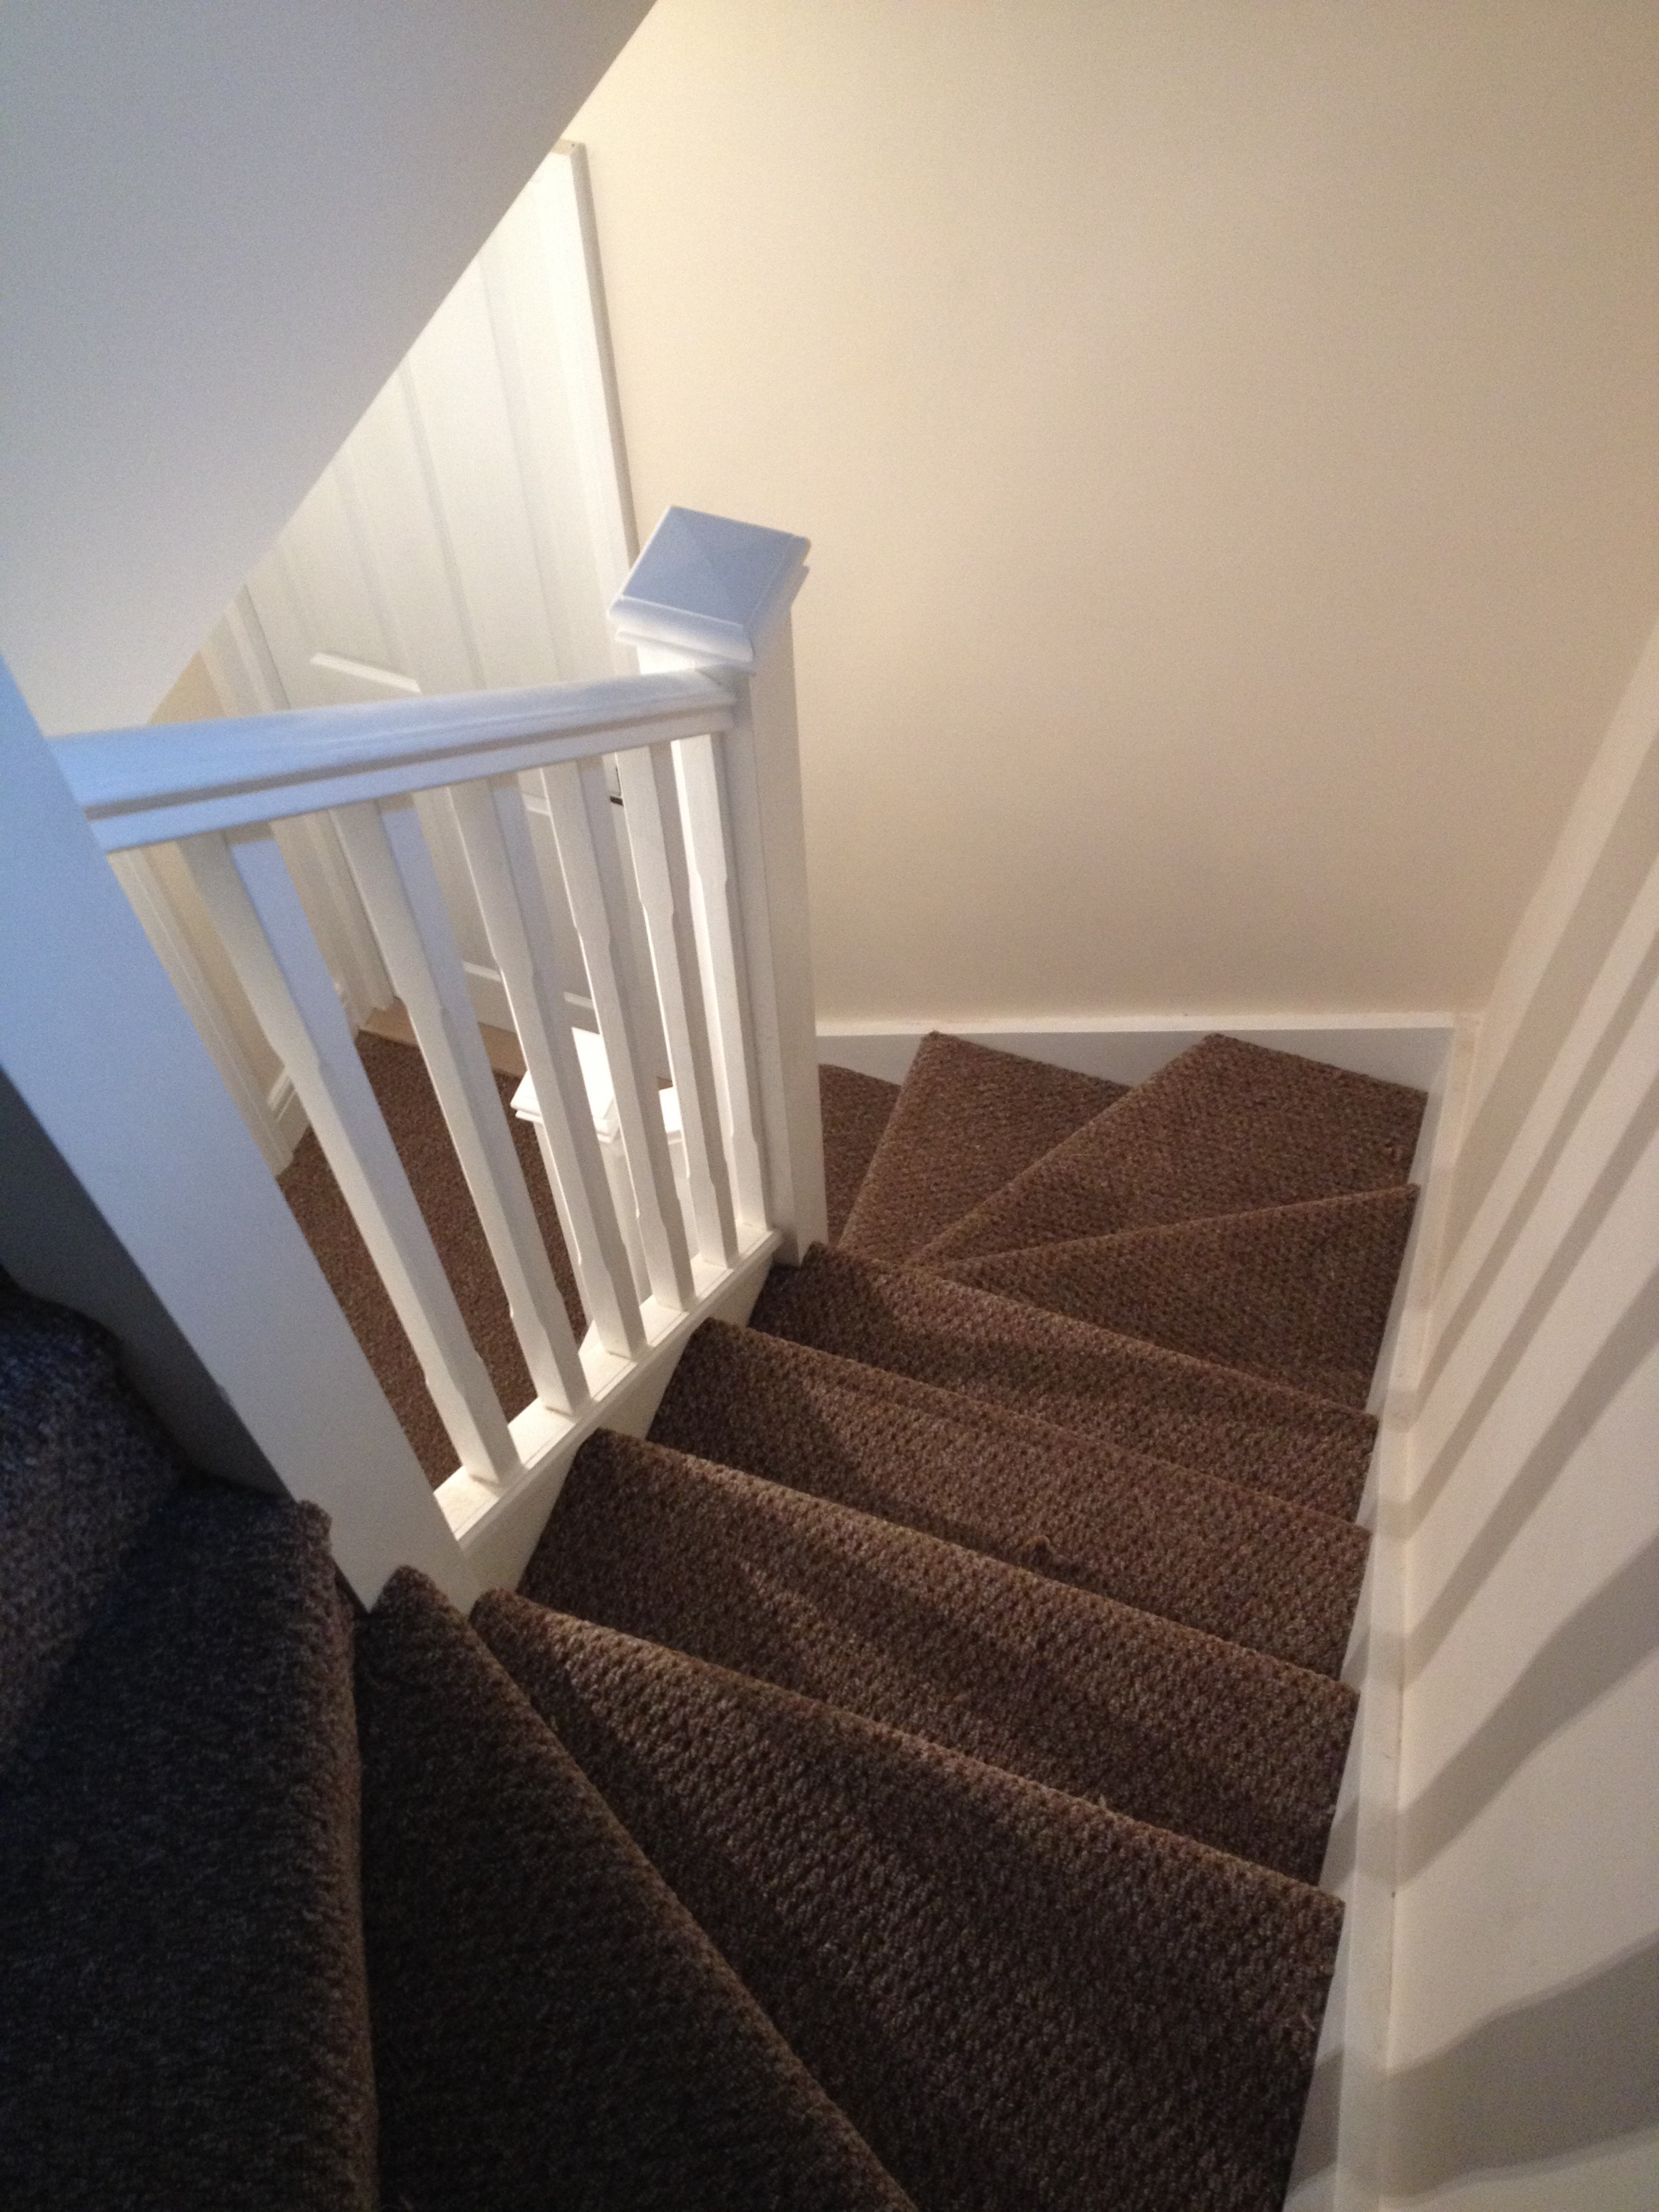 Loft conversion - staircase complete